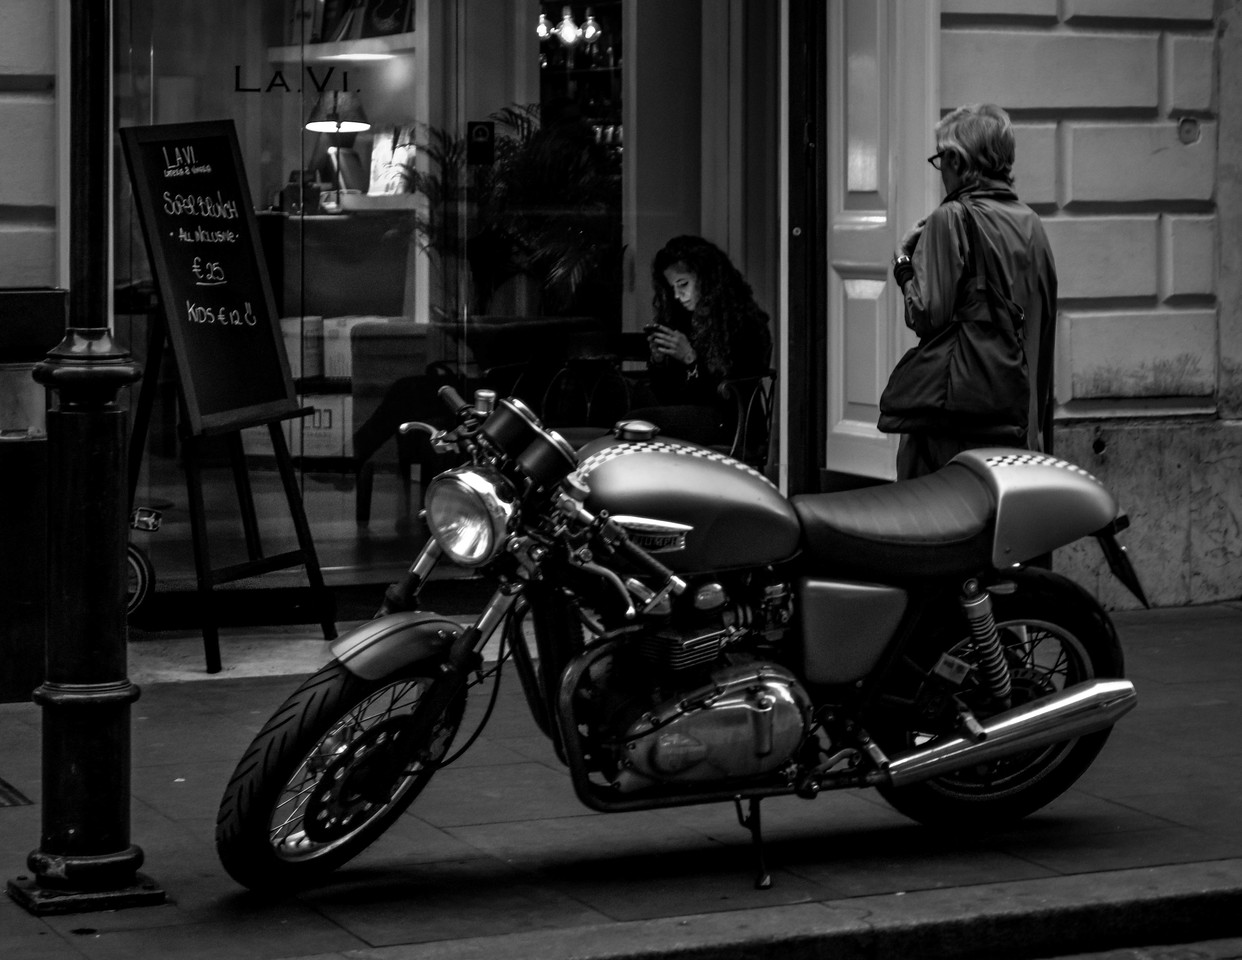 Rome Cafe Motorcycle